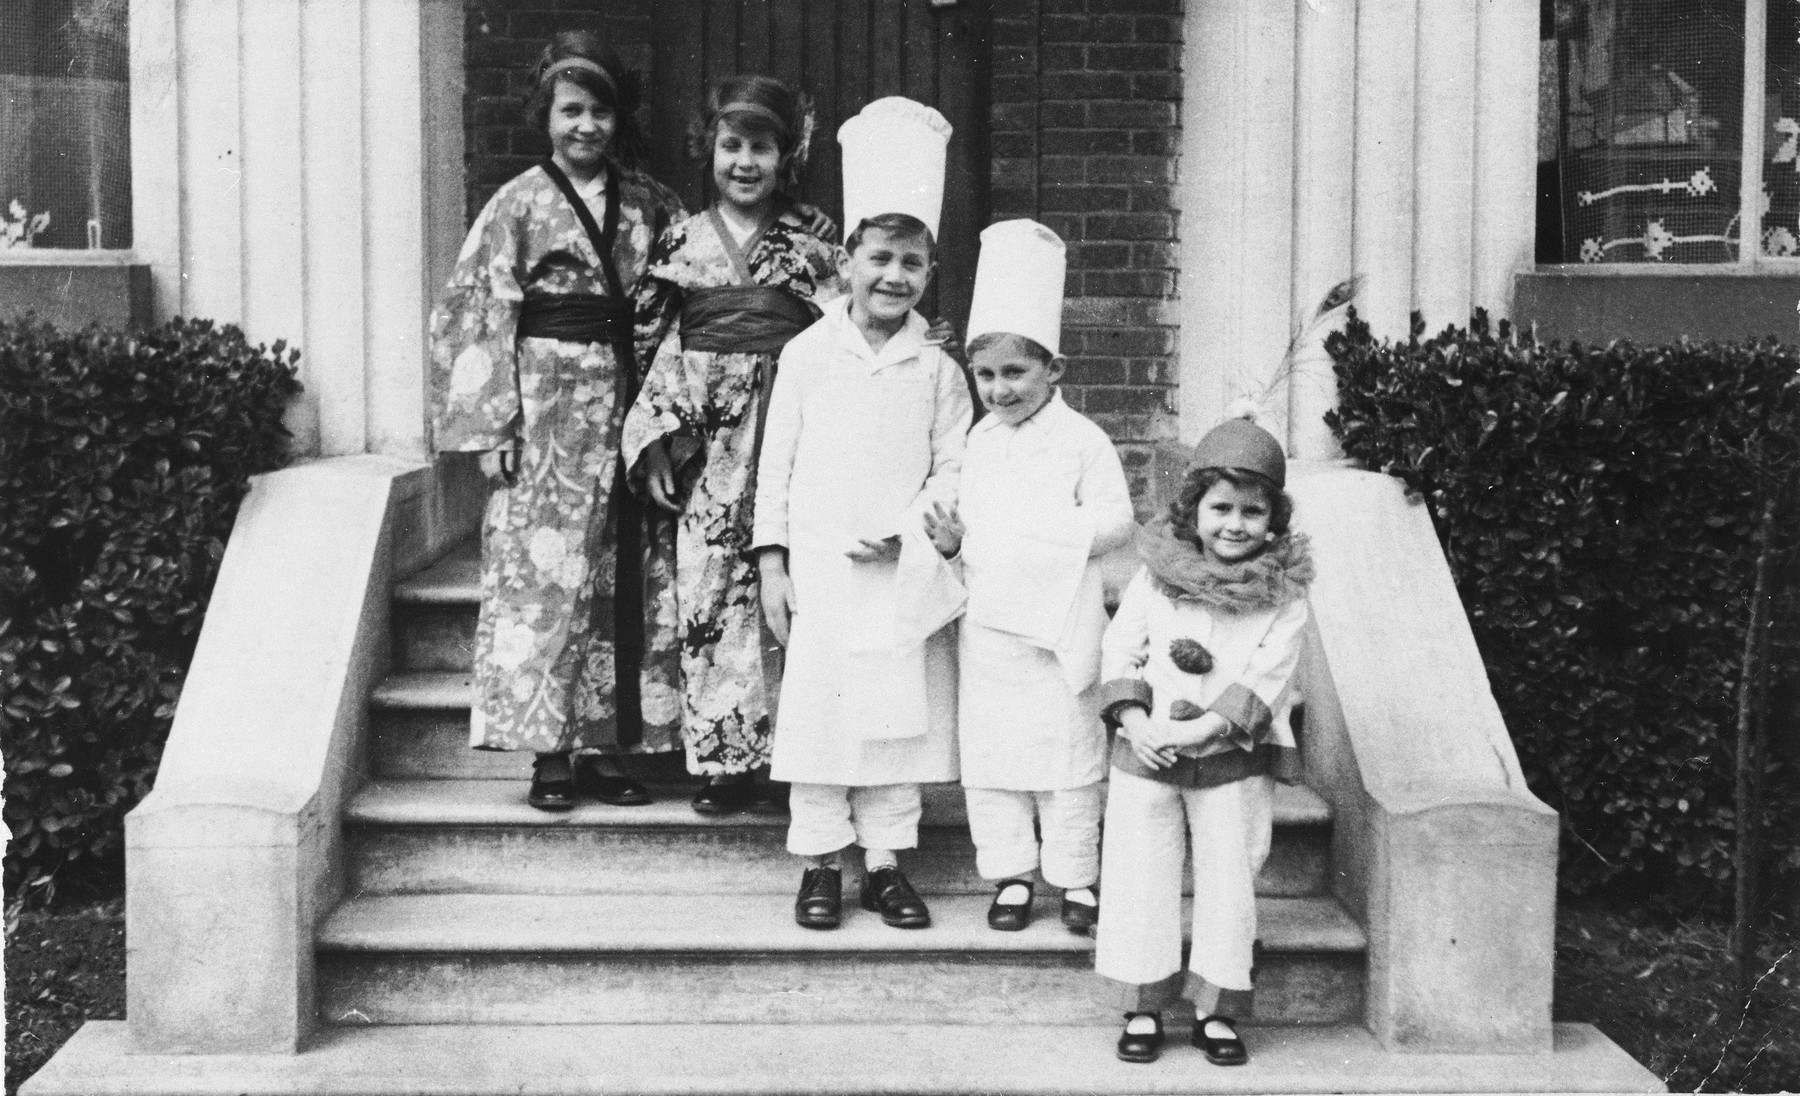 The Feist children pose on the steps of their home dressed in Purim costumes.  Pictured from left to right are: Selma, Judith, Martin, Jacob and Ellen Feist.